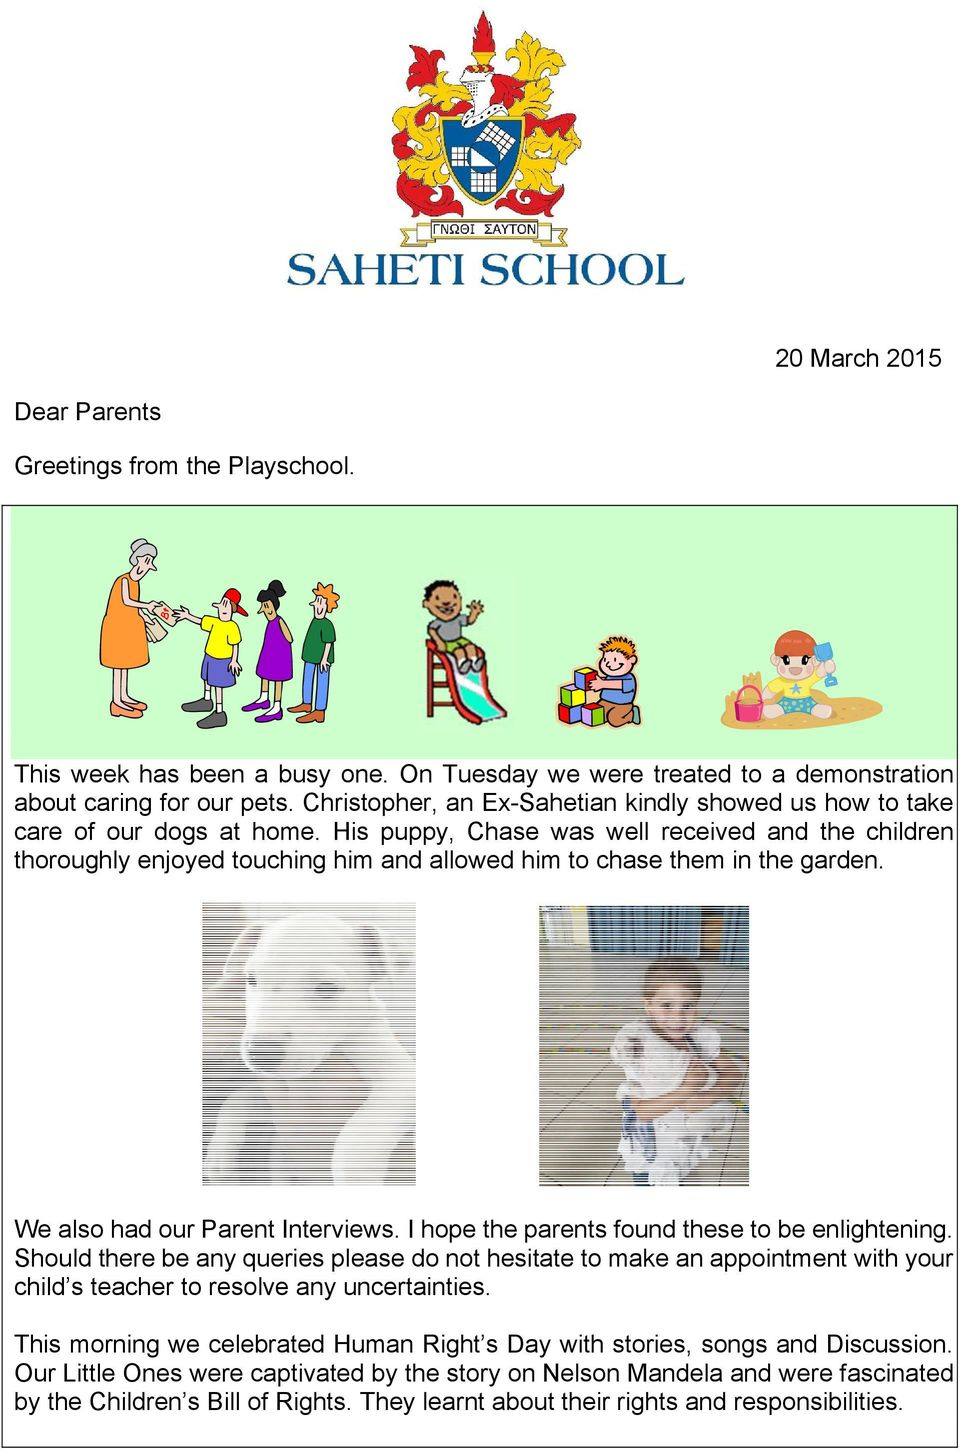 His puppy, Chase was well received and the children thoroughly enjoyed touching him and allowed him to chase them in the garden. We also had our Parent Interviews.